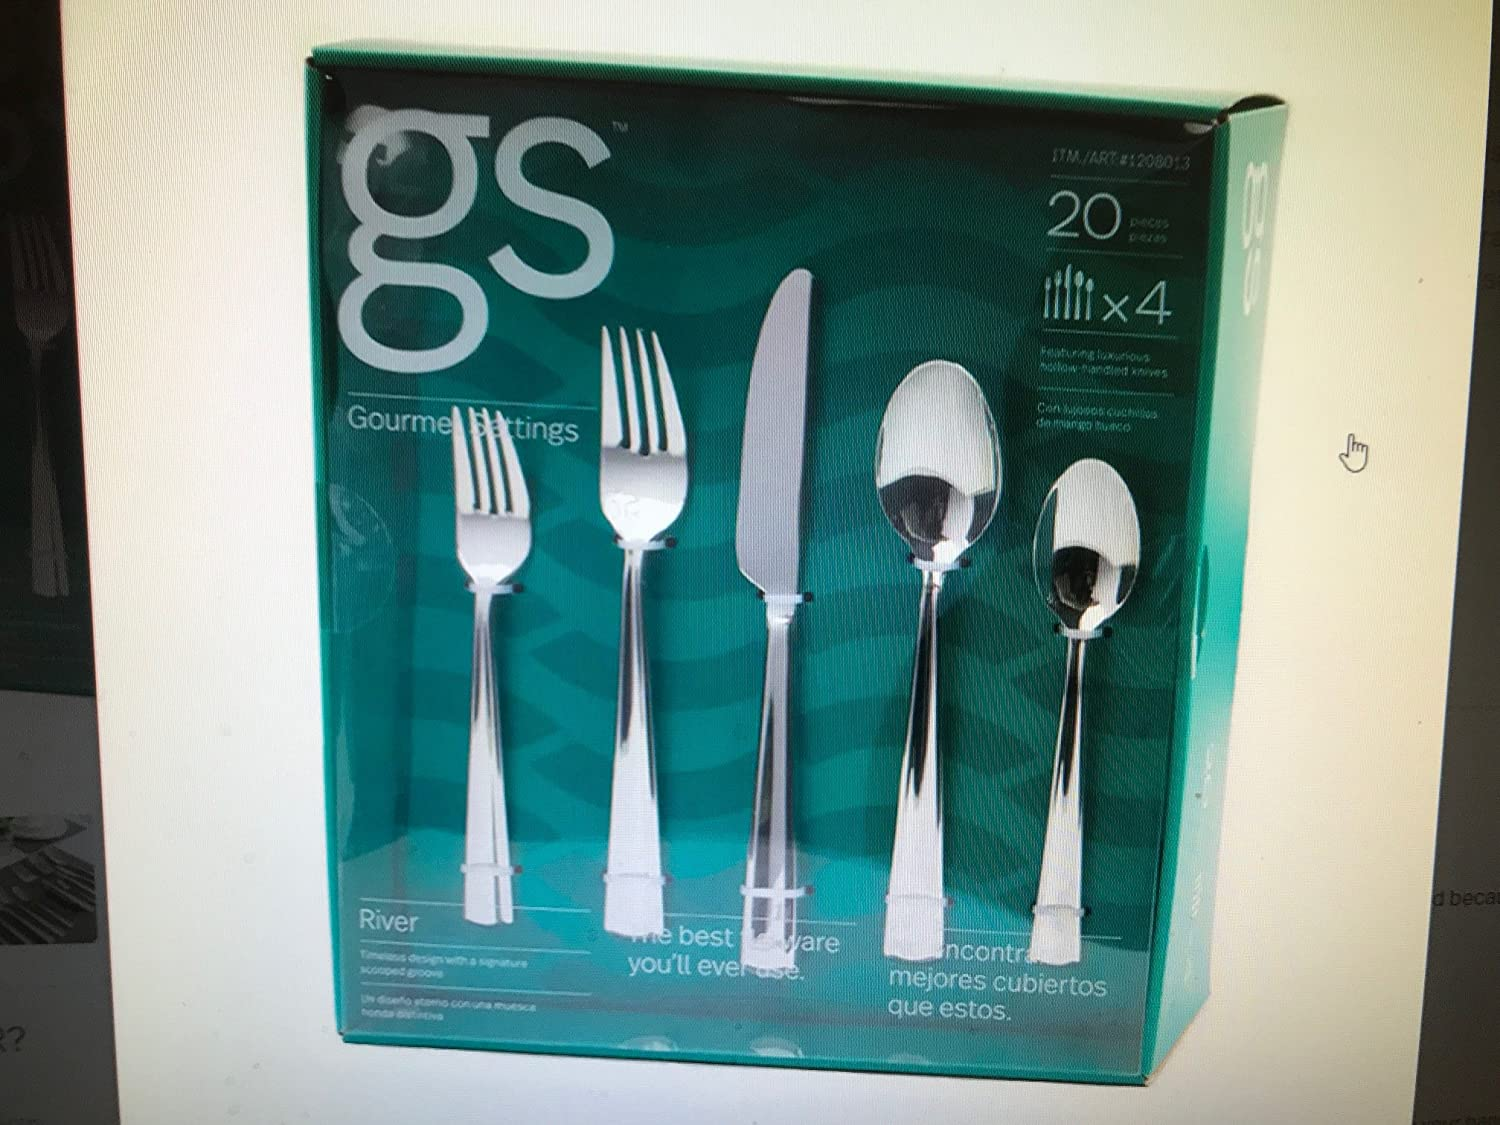 Amazon.com | Gourmet Settings GS Moonlight Fabulous Fine Flatware 20 Pieces Set: Flatware Sets